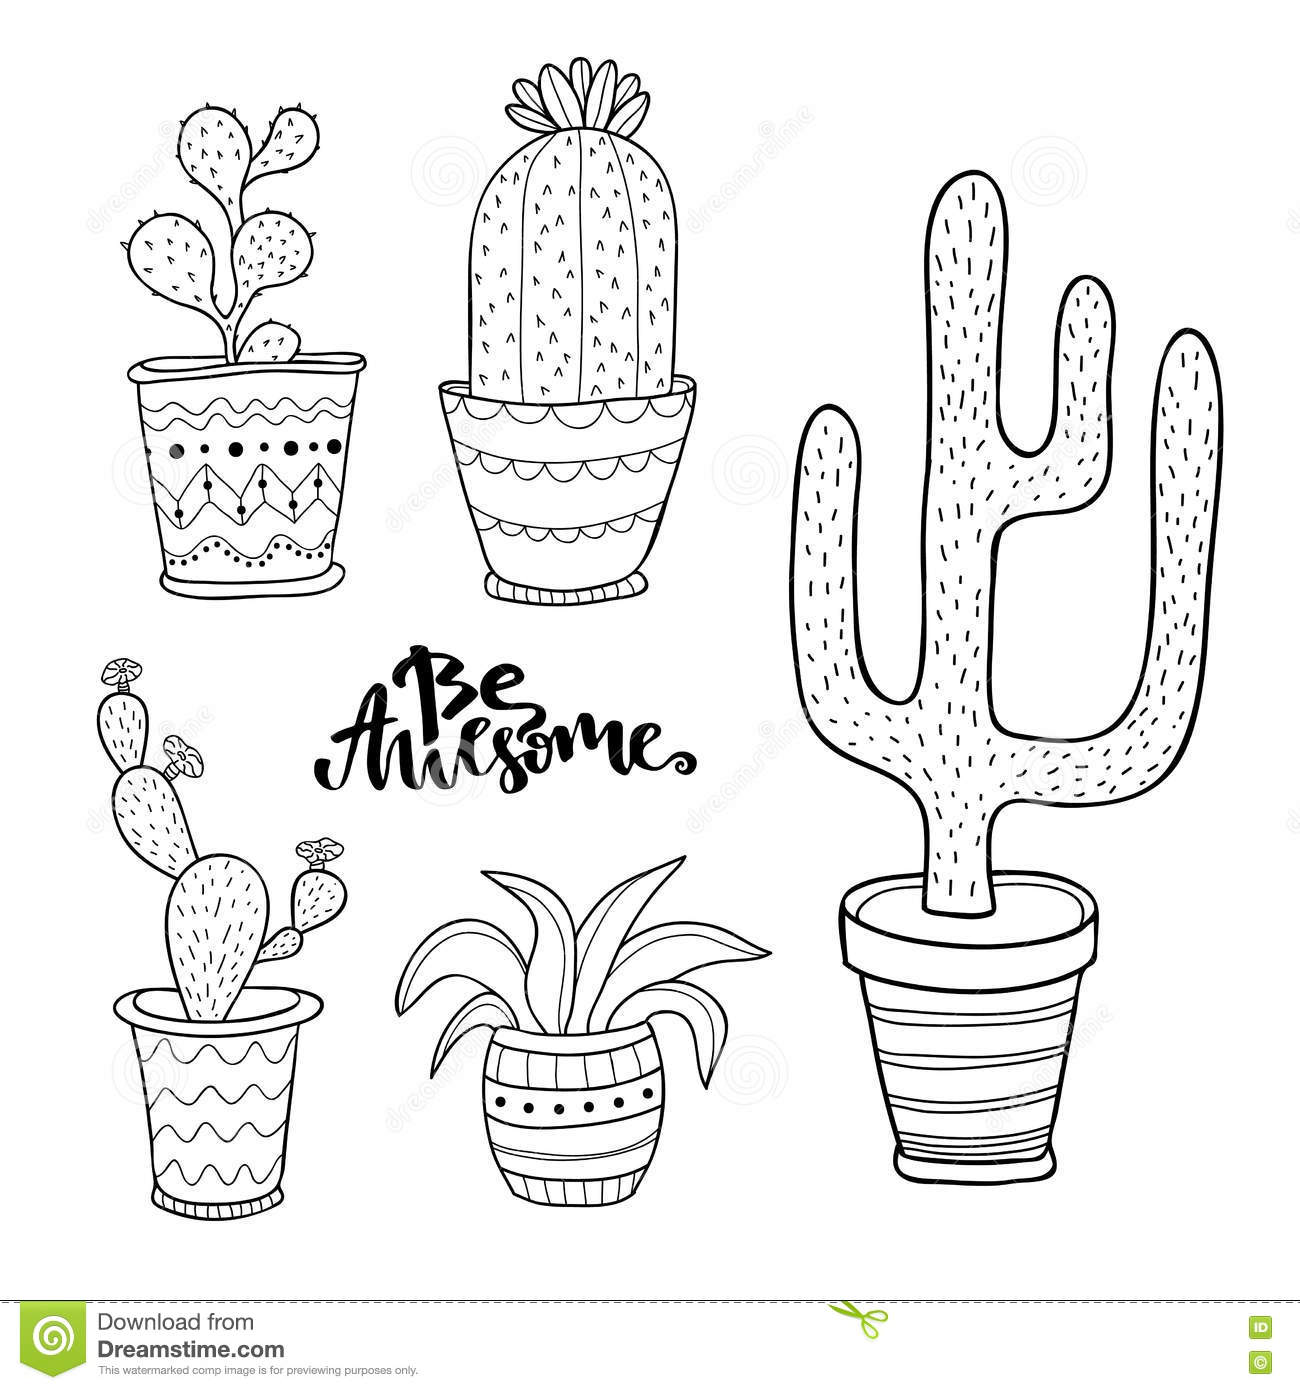 Easy Tumblr Drawing Coloring Pages